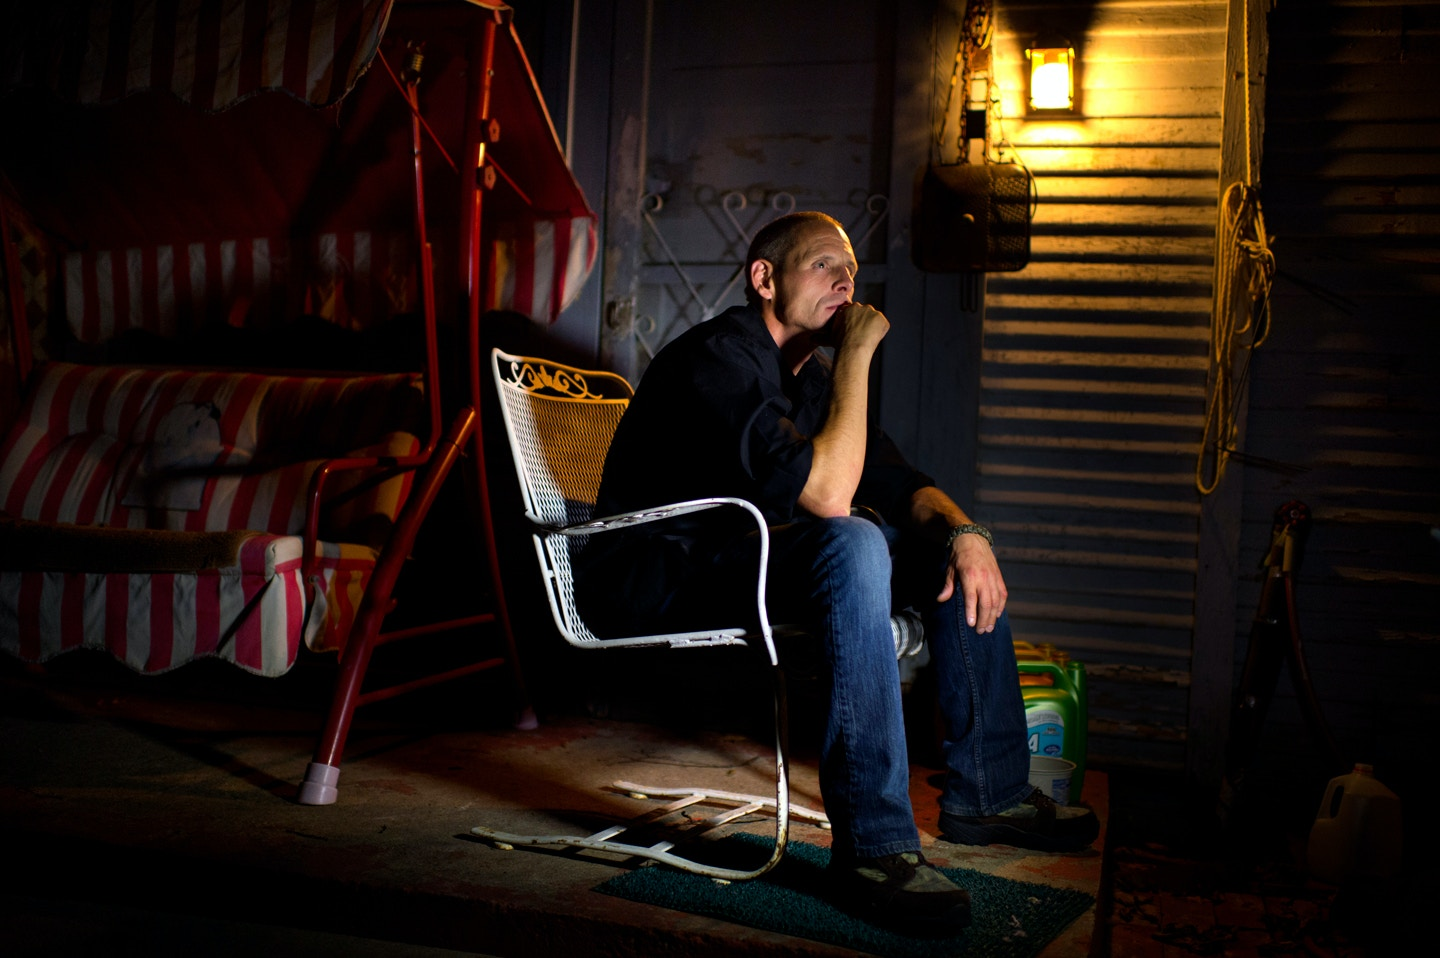 CORSICANA, TX - JULY 23: Johnny Webb, posing in his mother's back yard, on July 23, 2014 in Corsicana, Texas.  Webb was a witness who testified that Cameron Todd Willingham made a jailhouse confession to him that he murdered his three children, has come forward to say he gave false testimony. Cameron Todd Willingham was convicted by a local jury of setting deadly fire that killed his three children; he was subsequently executed on February 17, 2004 by the State of Texas. (Photo by Michel du Cille/The Washington Post via Getty Images)